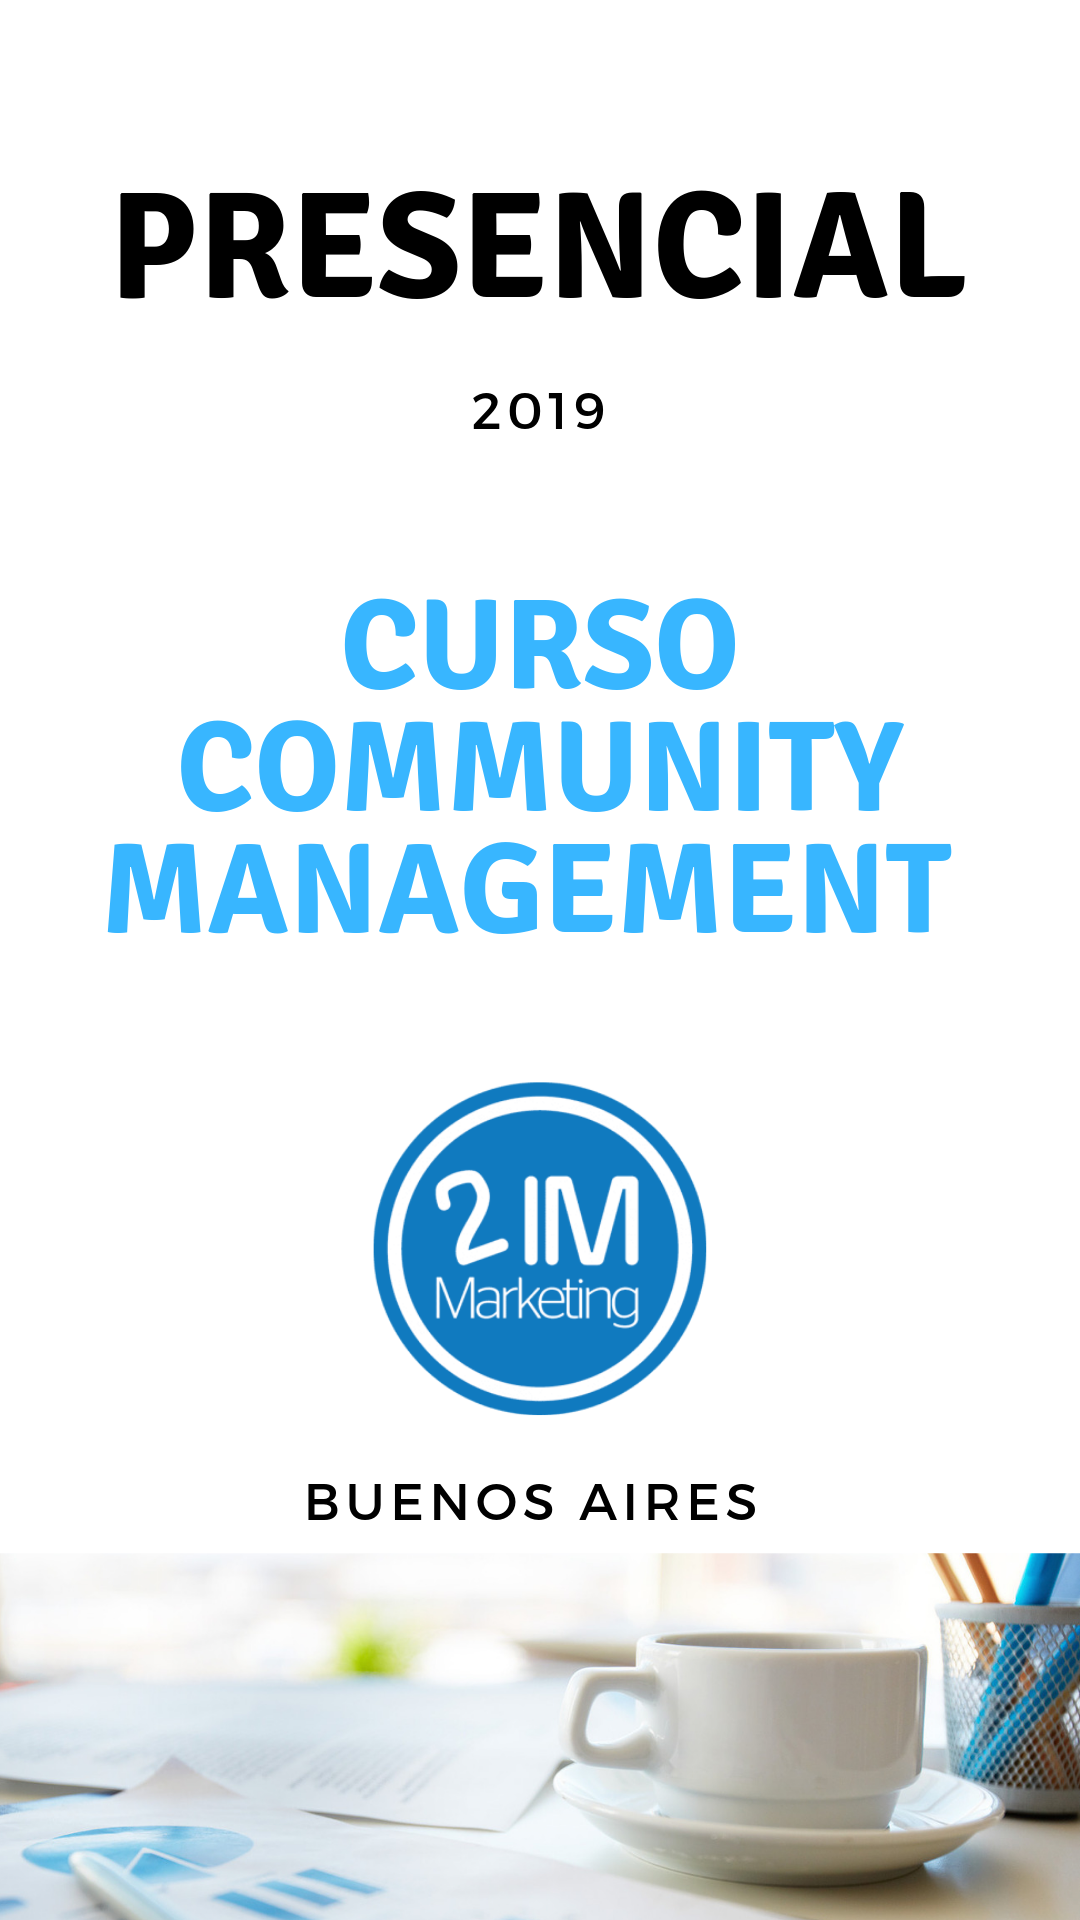 Curso community Manager Buenos Aires 2019